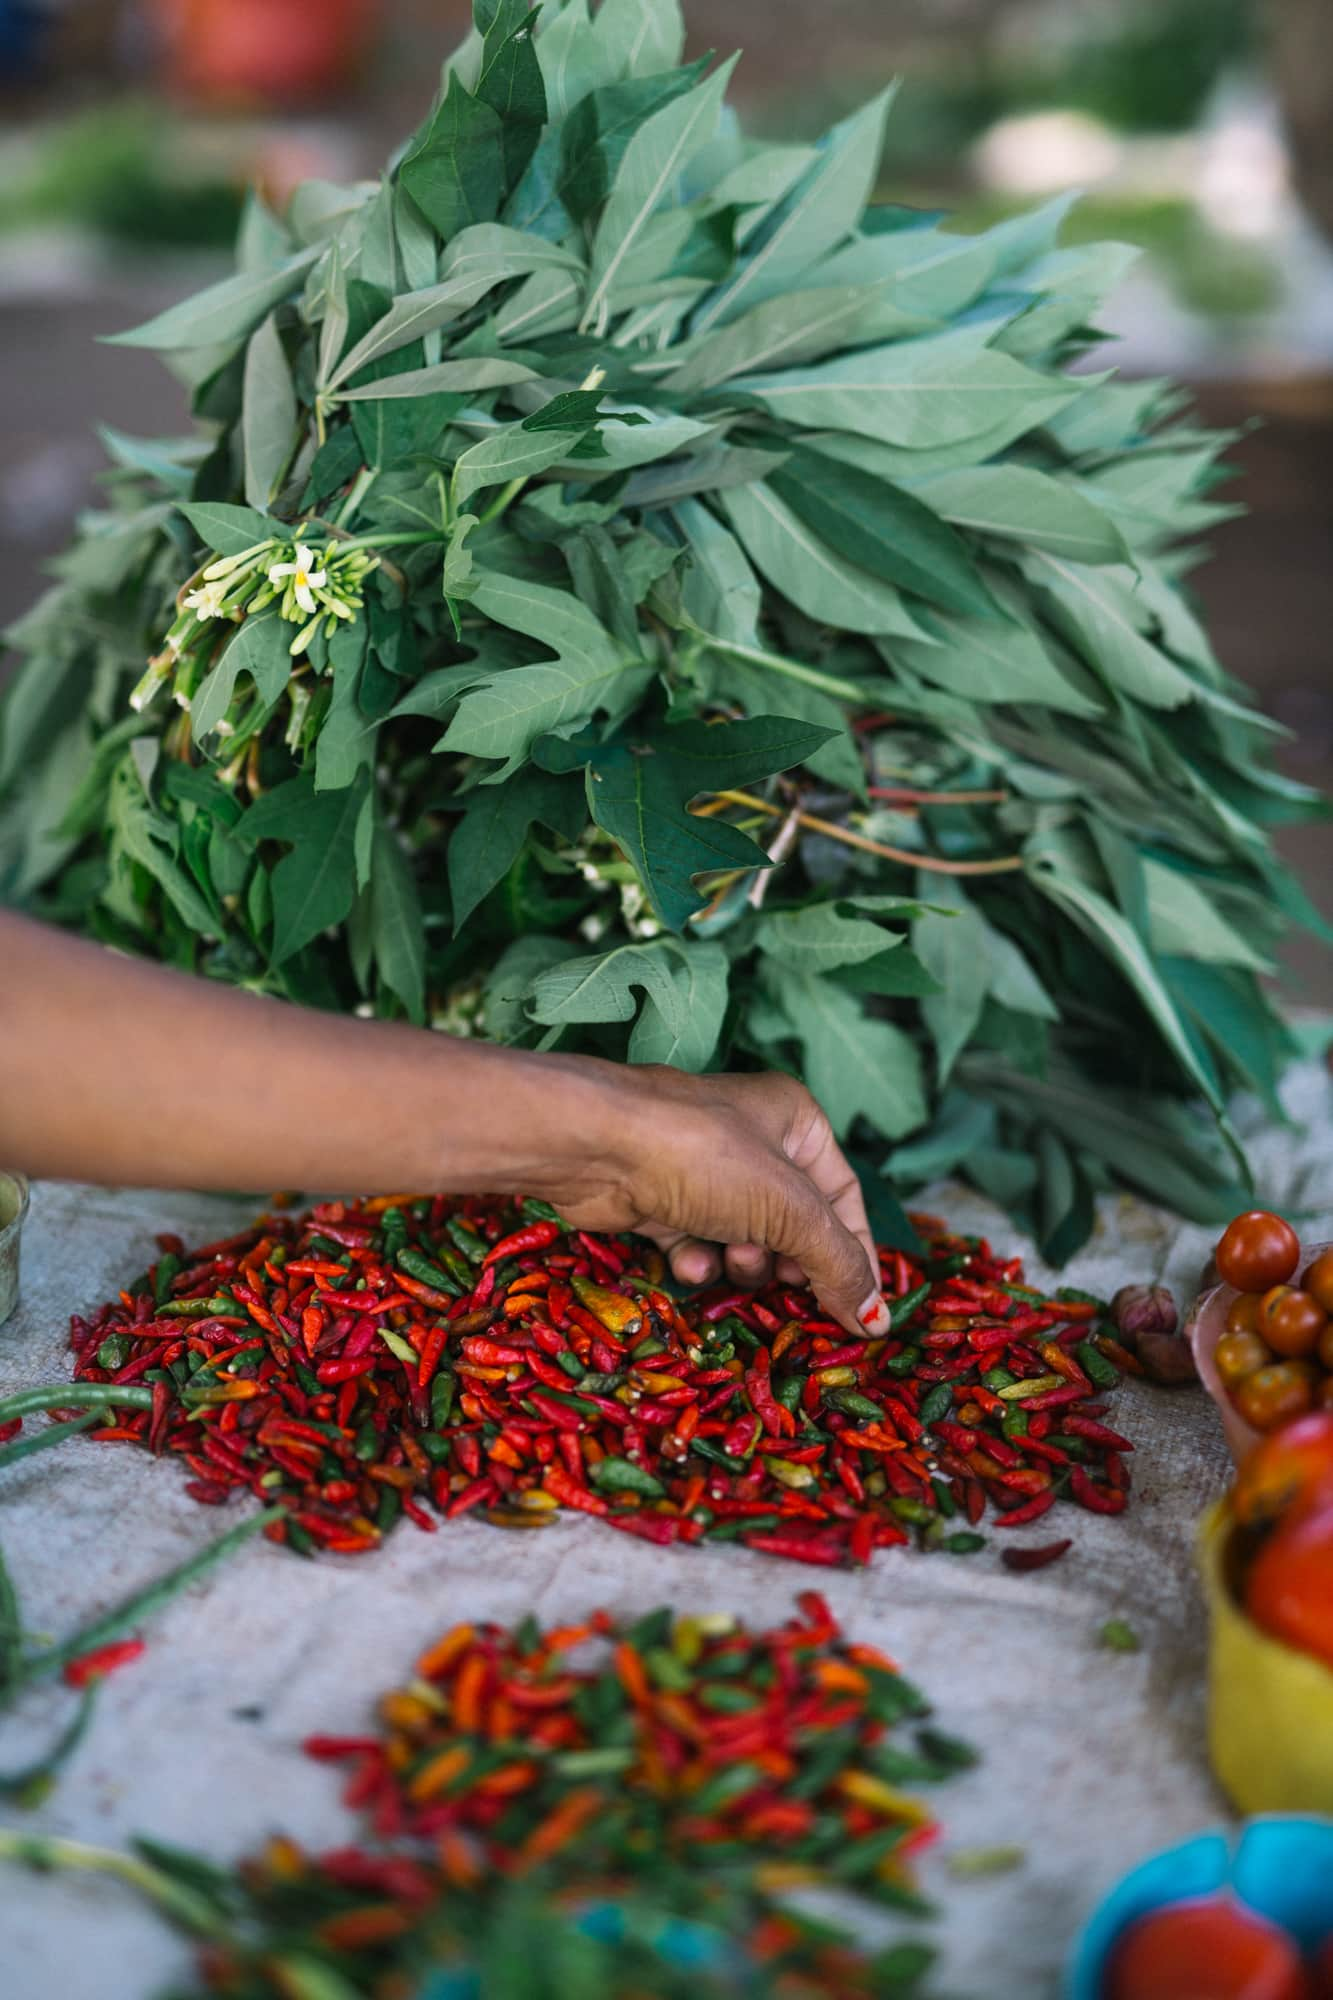 Traditional Cabai chili peppers at the market